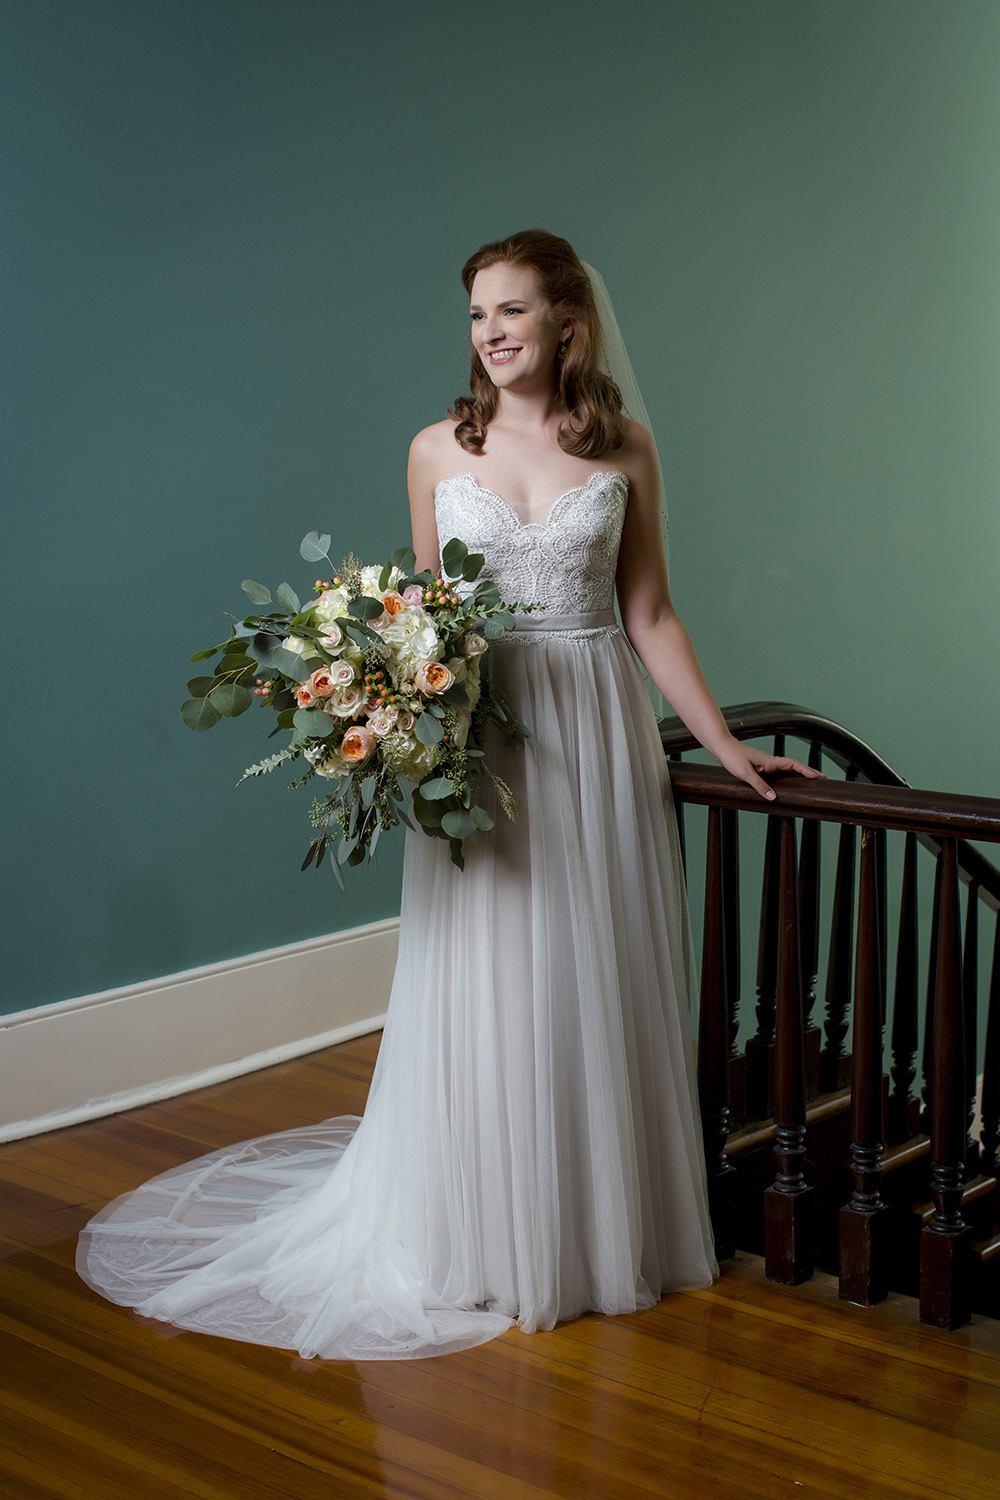 Stephanie-Bridals-0018.JPG